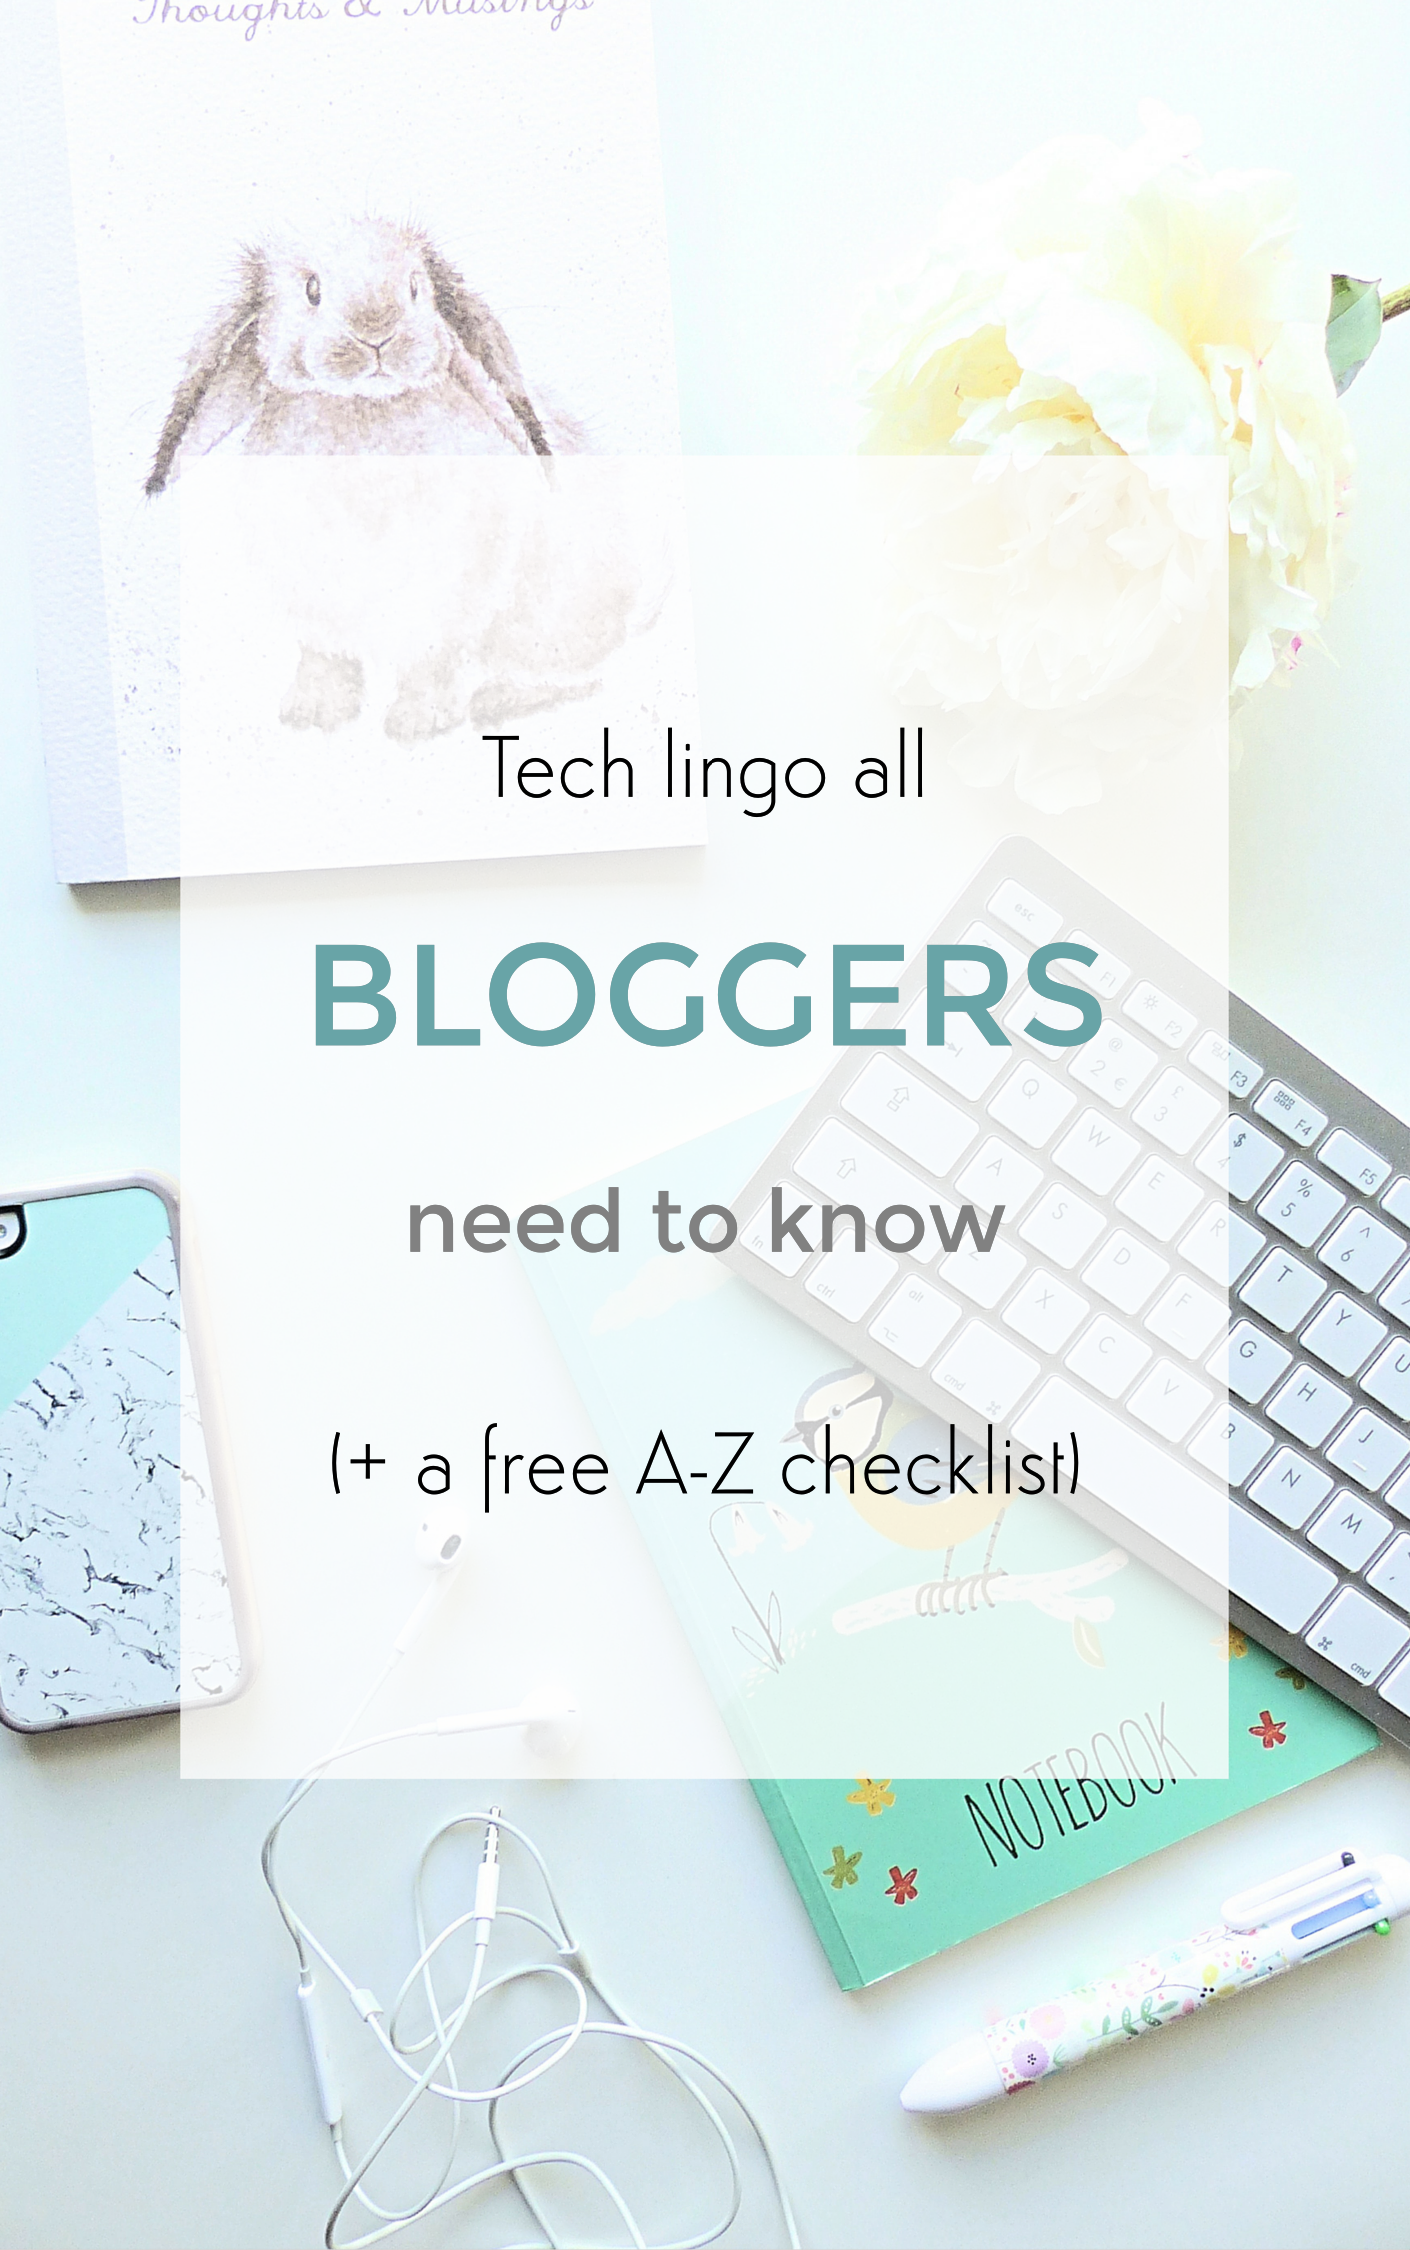 tech lingo all bloggers need to know